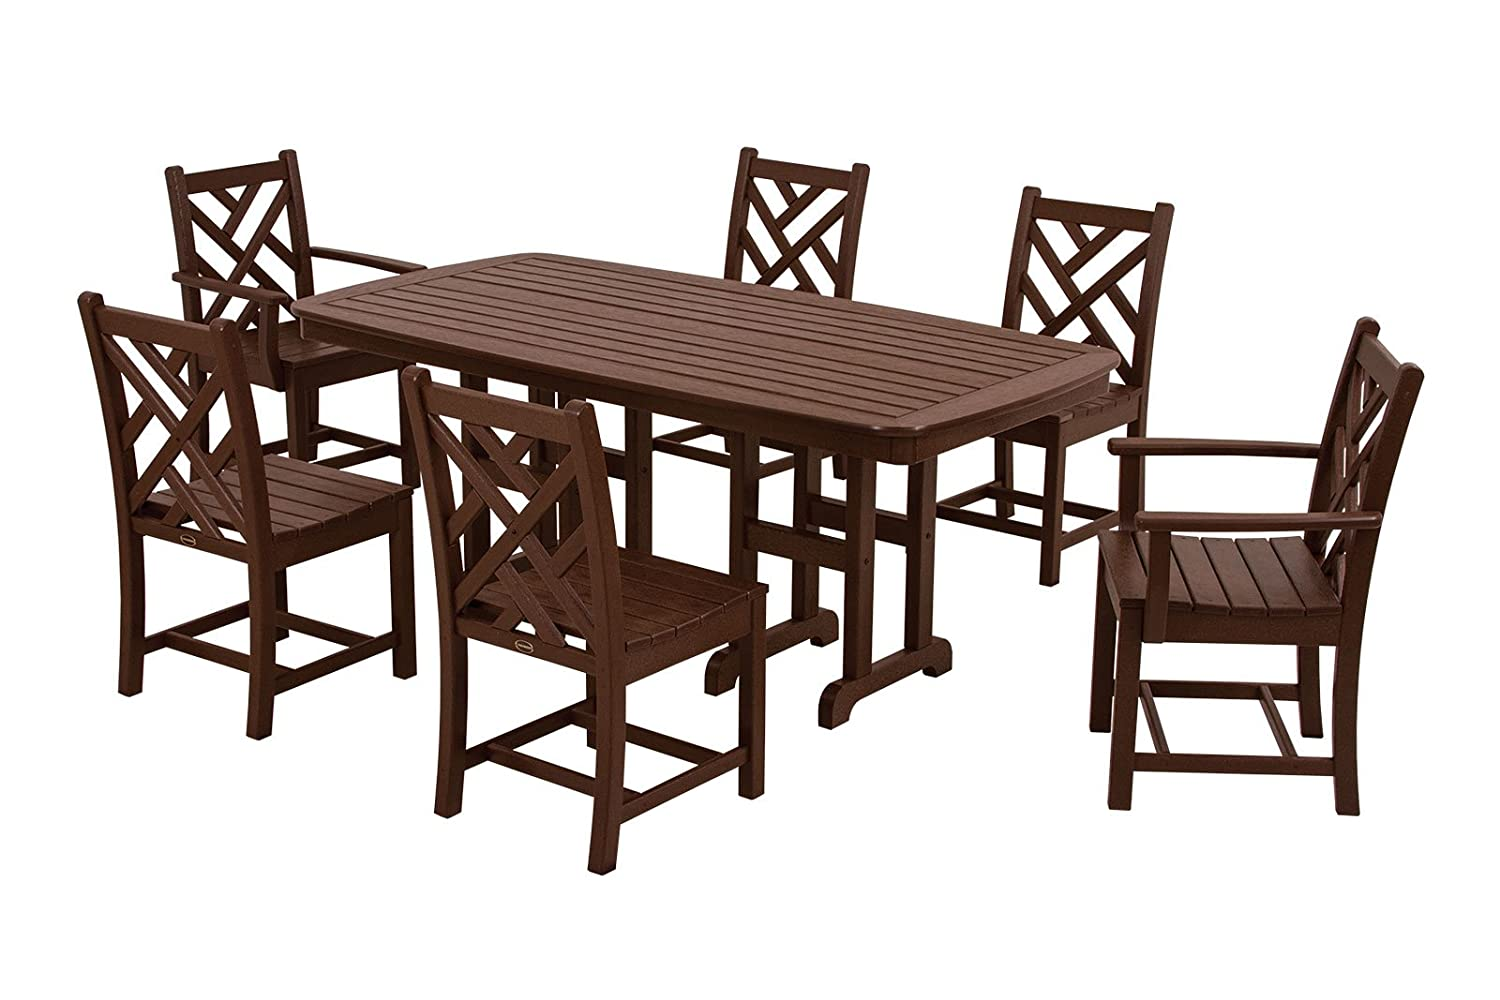 POLYWOOD PWS121-1-MA Chippendale 7-Piece Dining Set, Mahogany